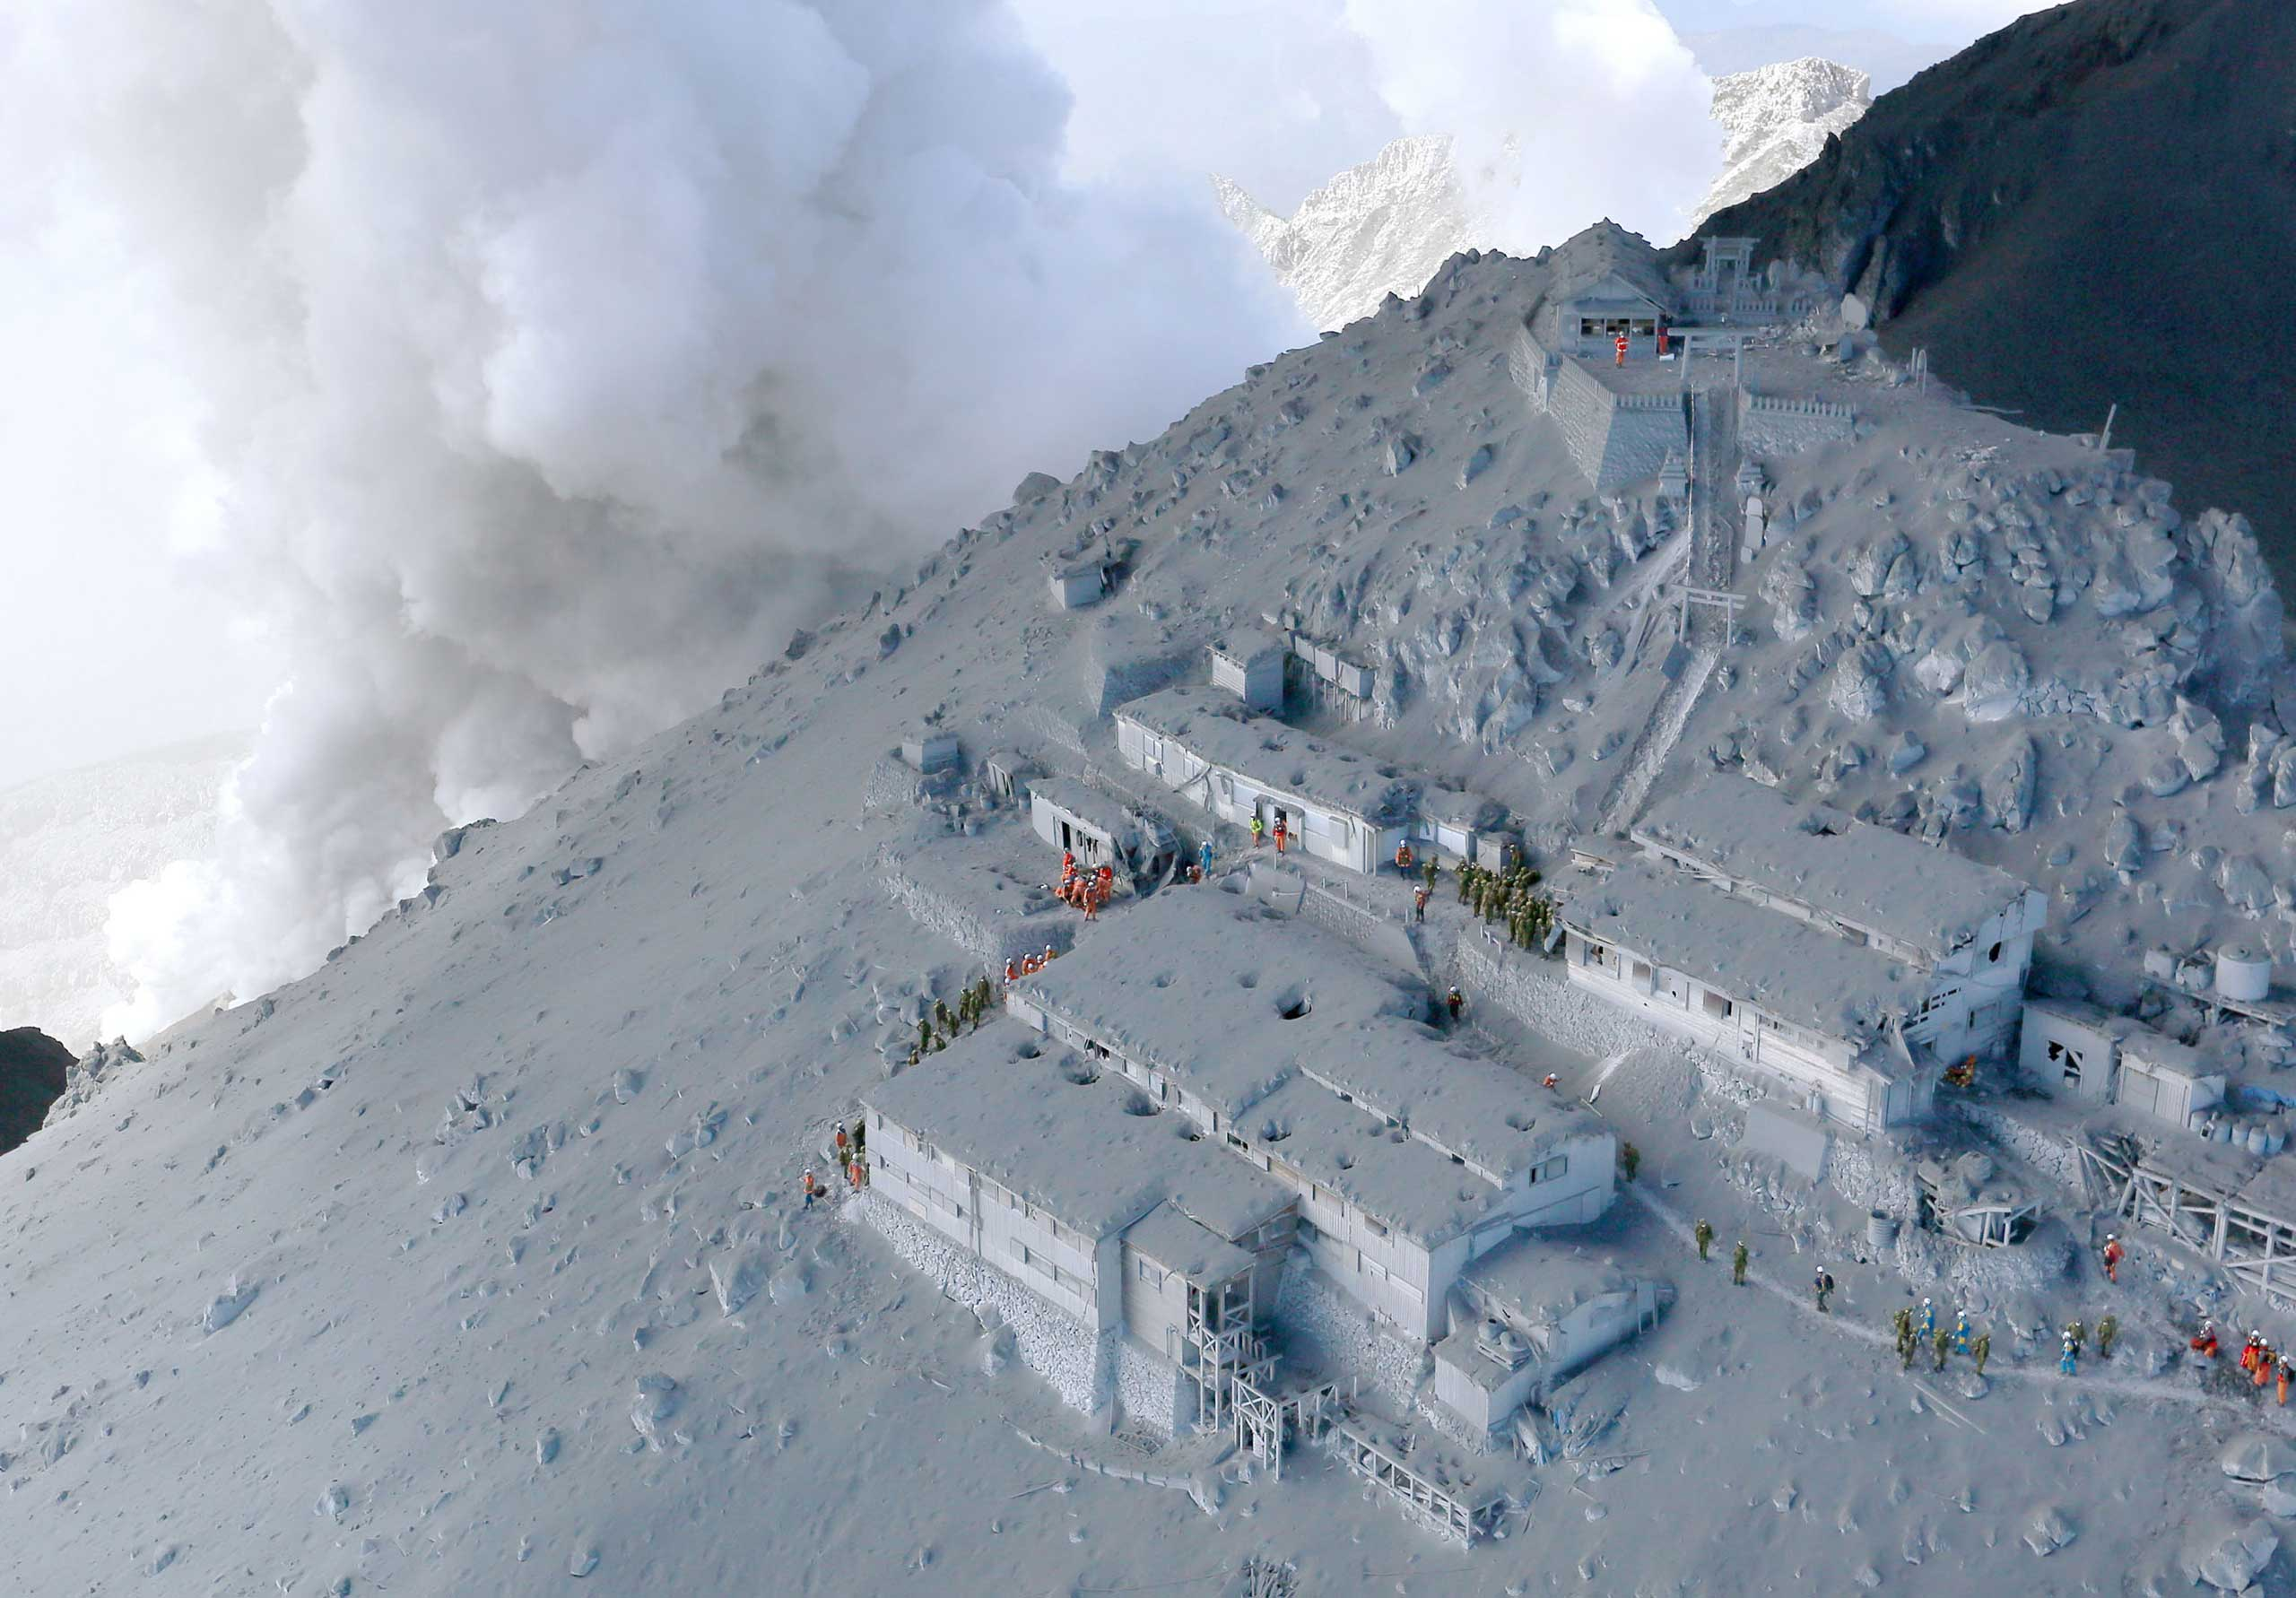 Sept. 28, 2014. Firefighters and members of Japan's Self-Defense Forces conduct a rescue operation at a cabin near the peak of Mount Ontake as plumes of smoke billow in central Japan.